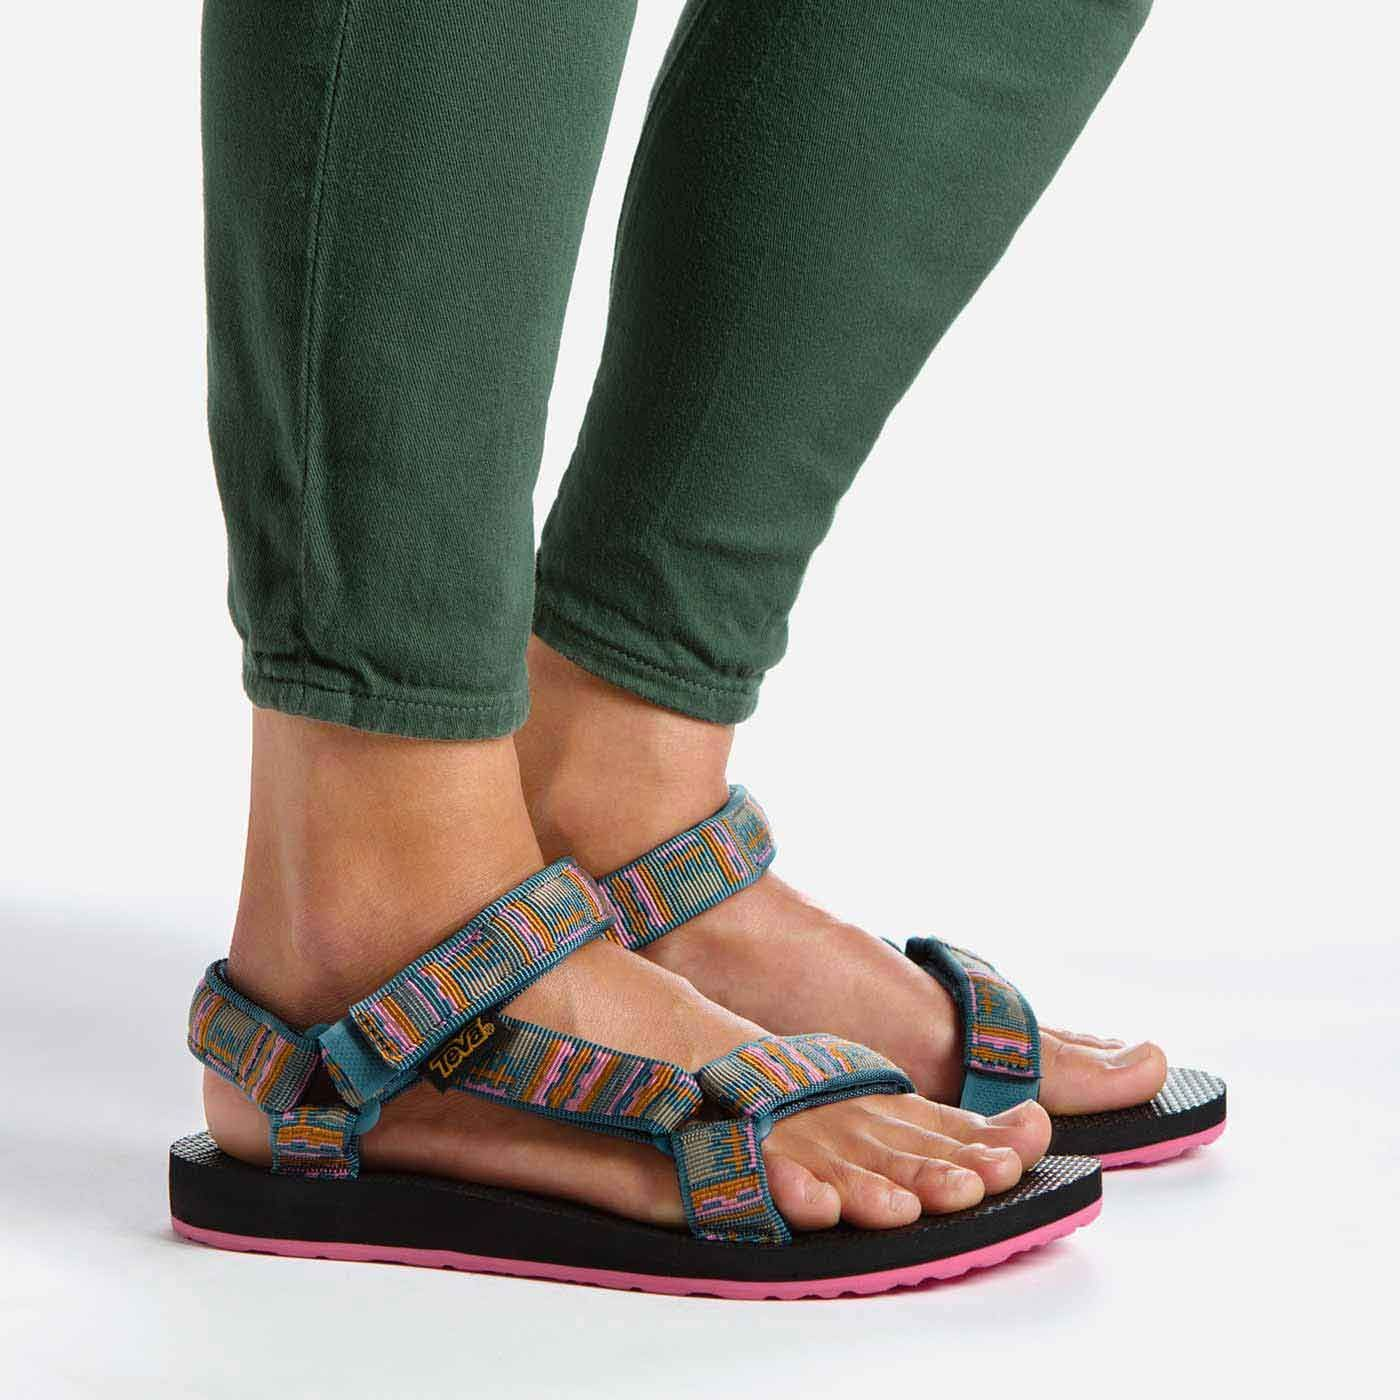 Free Shipping & Free Returns on Authentic Teva® Women's